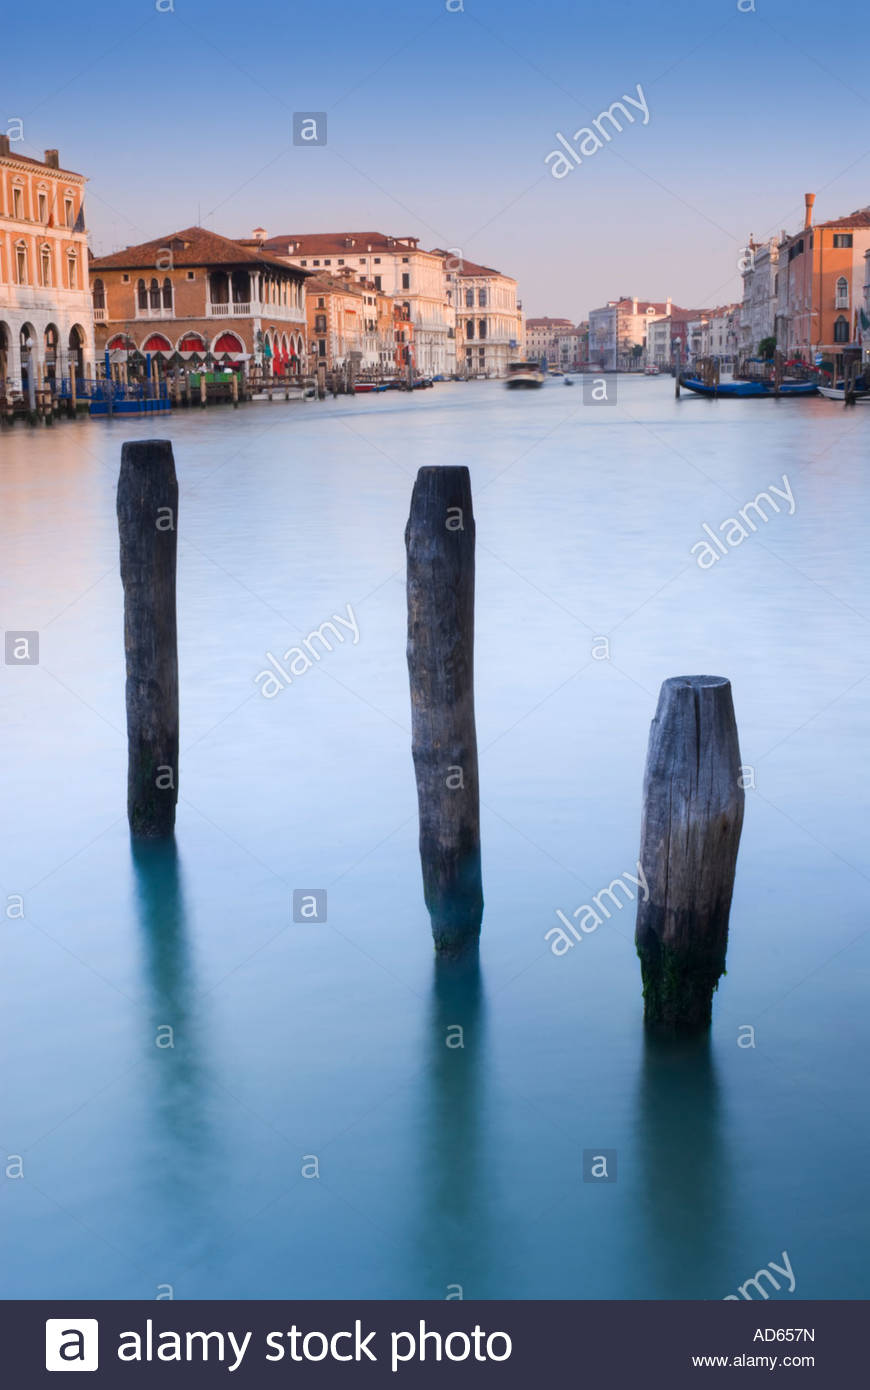 Mooring posts on the Grand Canal, Venice, Italy - Stock Image